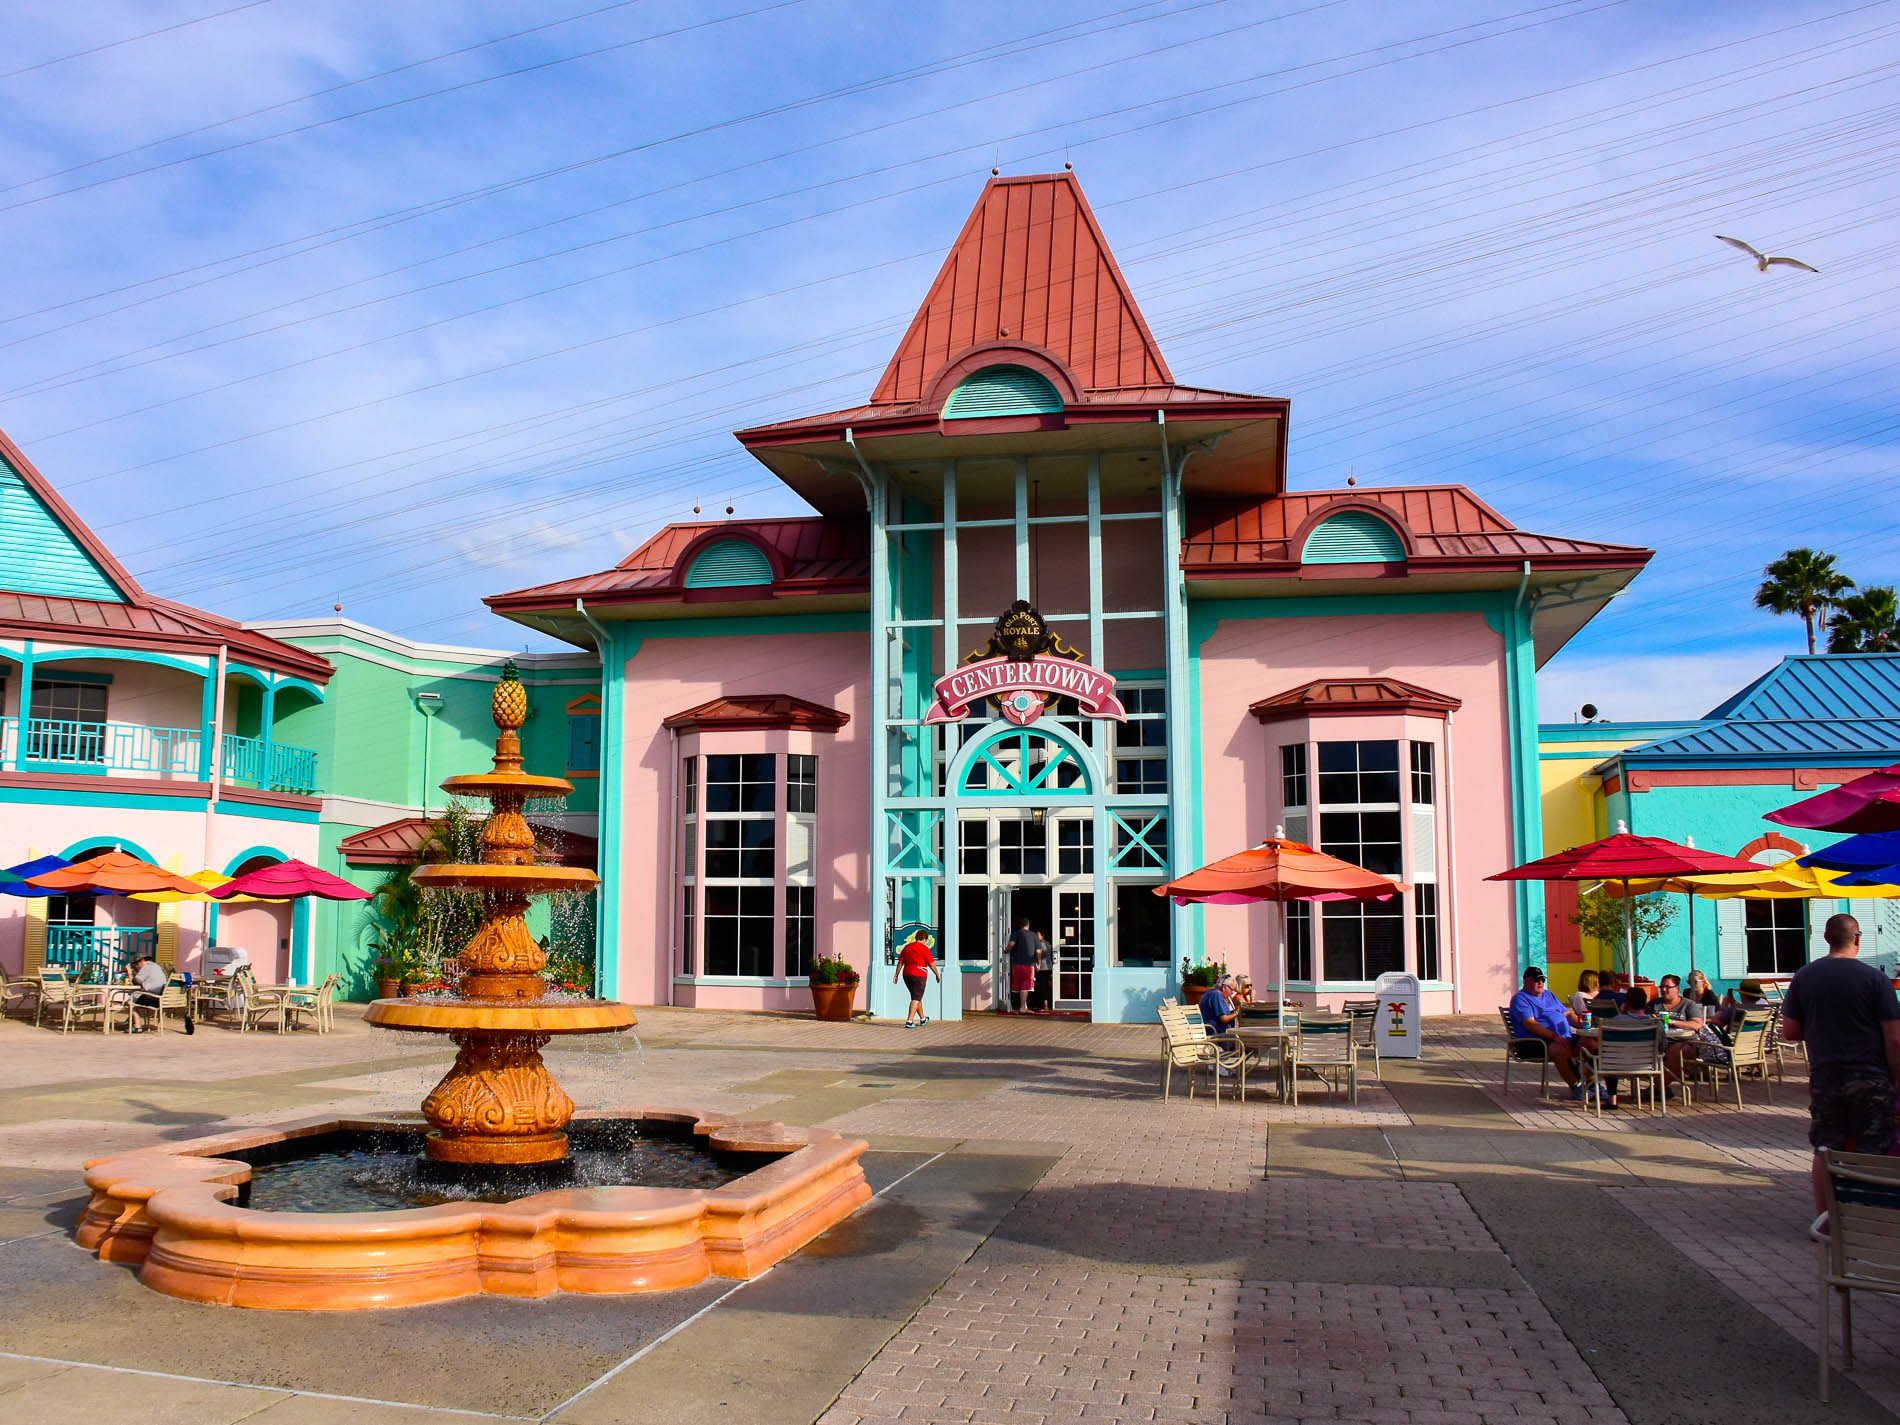 Old Port Royale Resembles A Mythical Caribbean